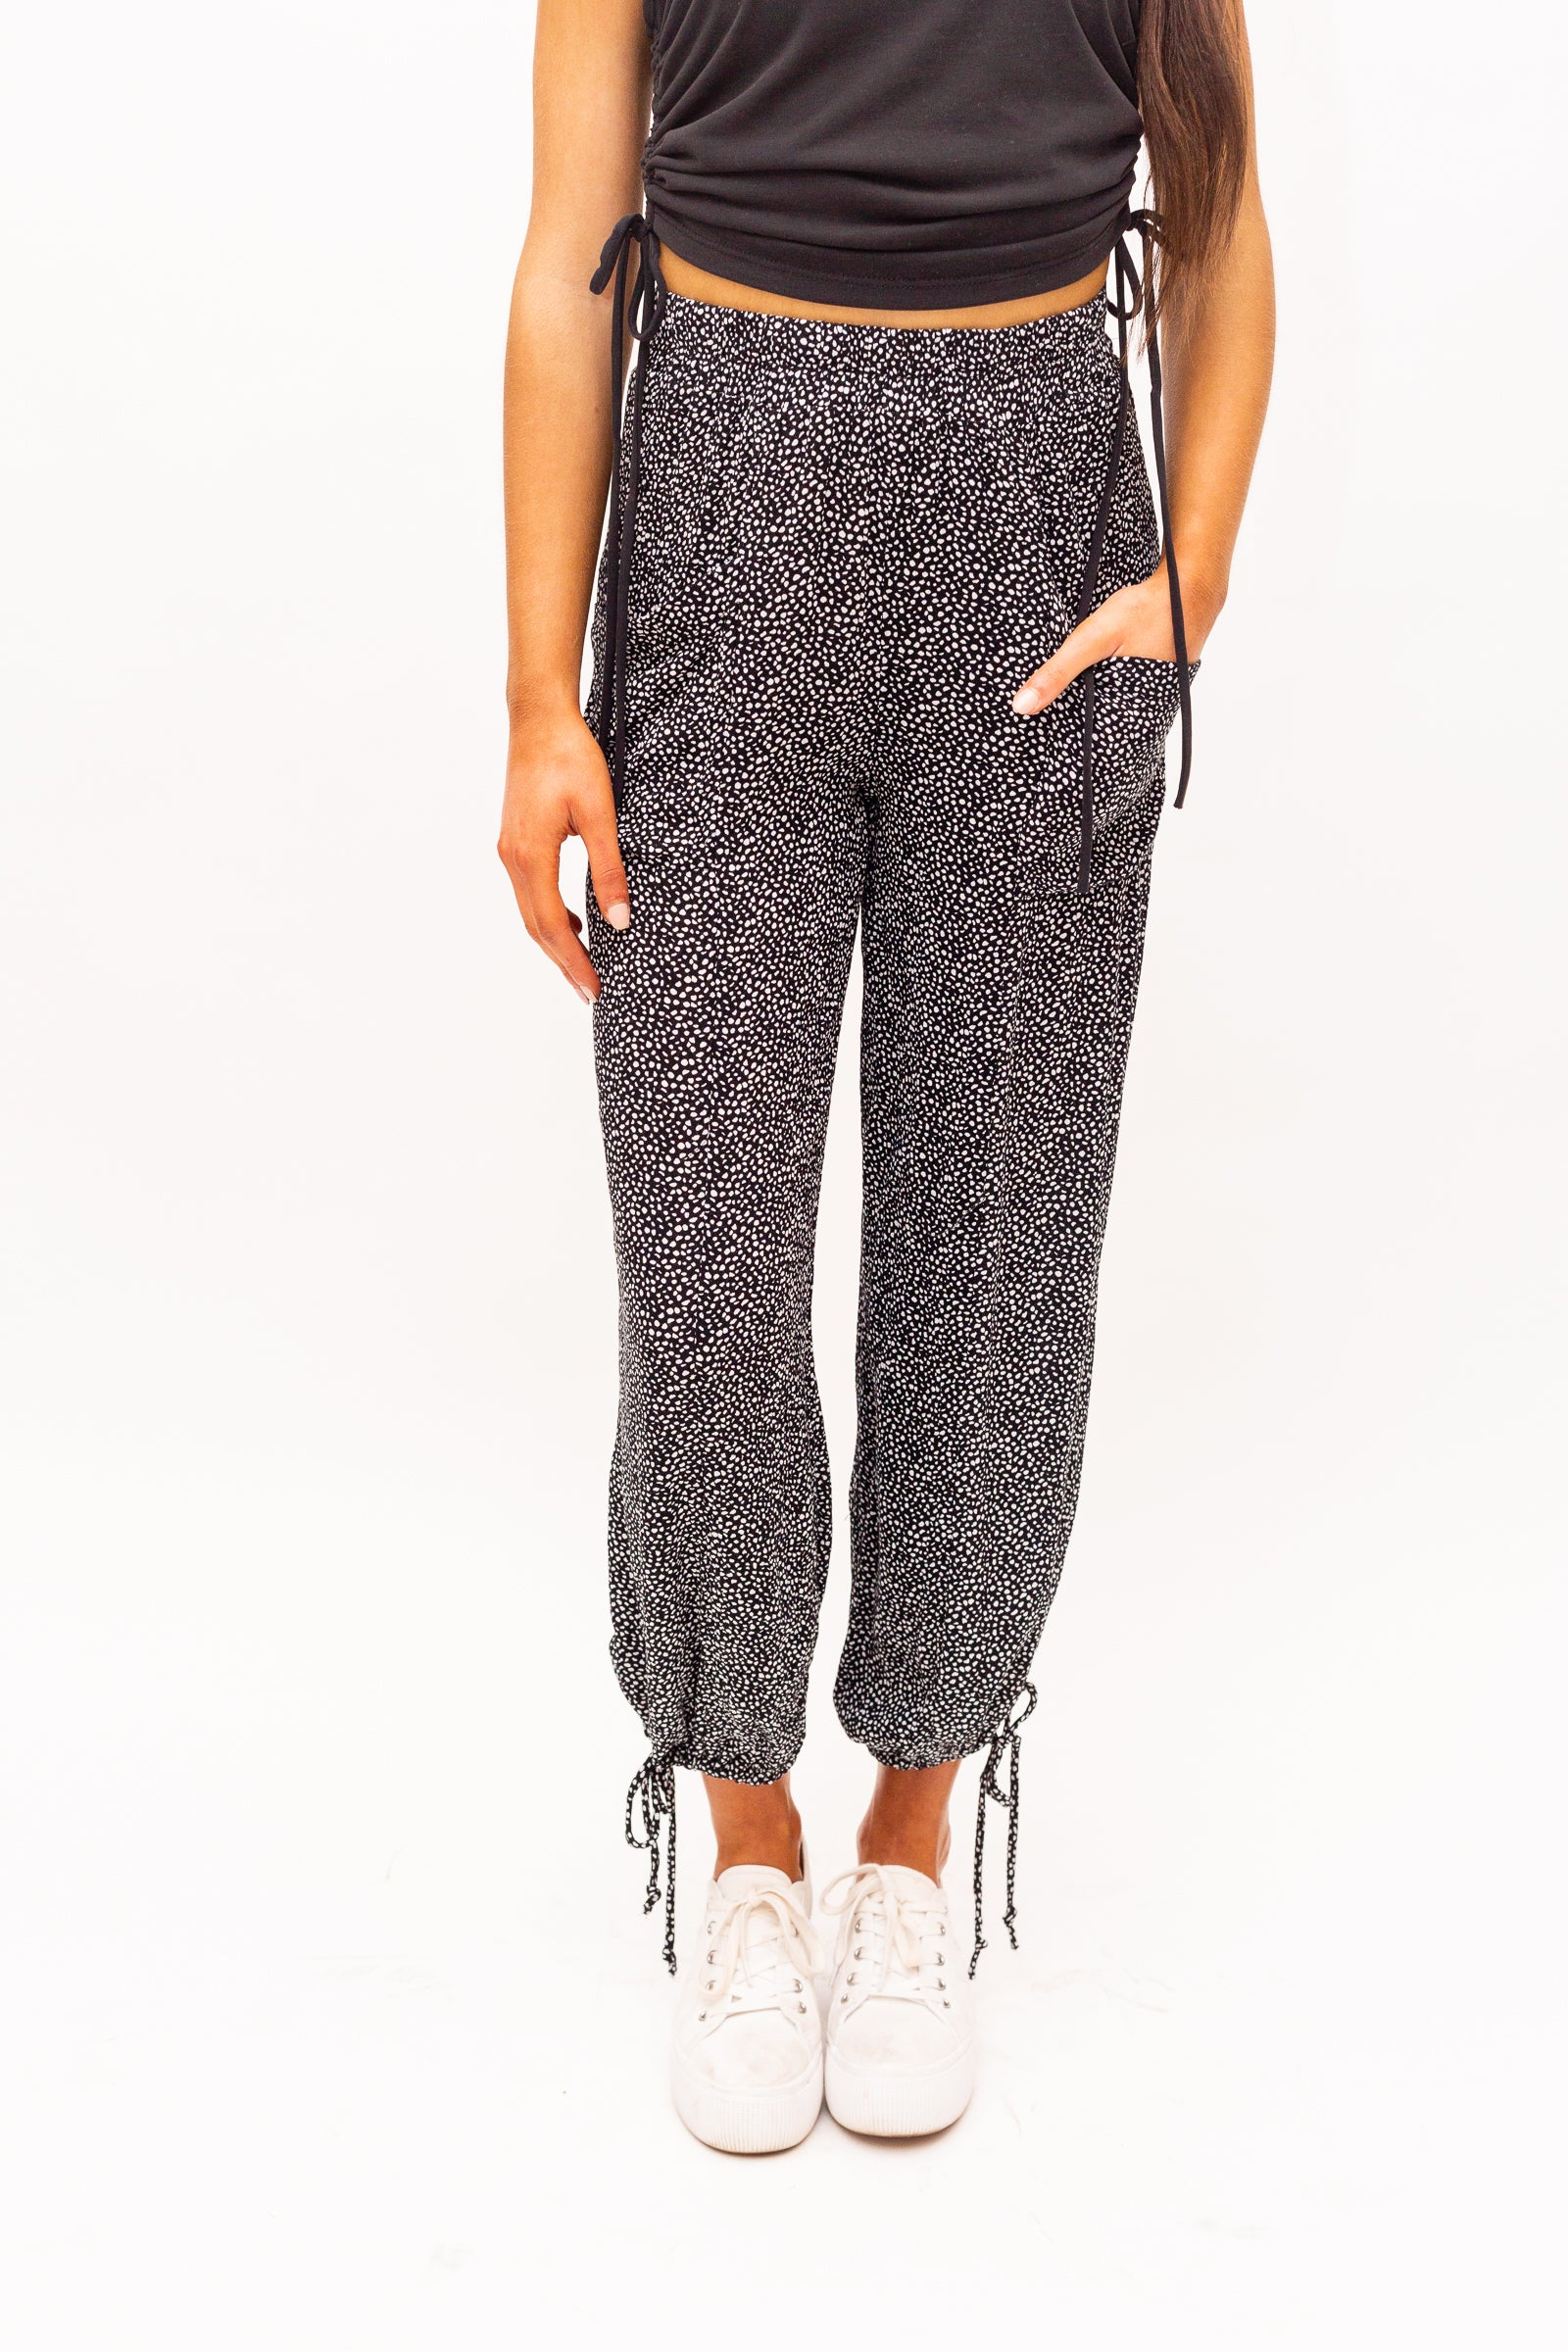 Dotted pants have an elastic waistband and lead to a loose and relaxed fit balloon pants with front pockets and taper into comfortable pant legs with drawstring tied cuffs at the ankles.